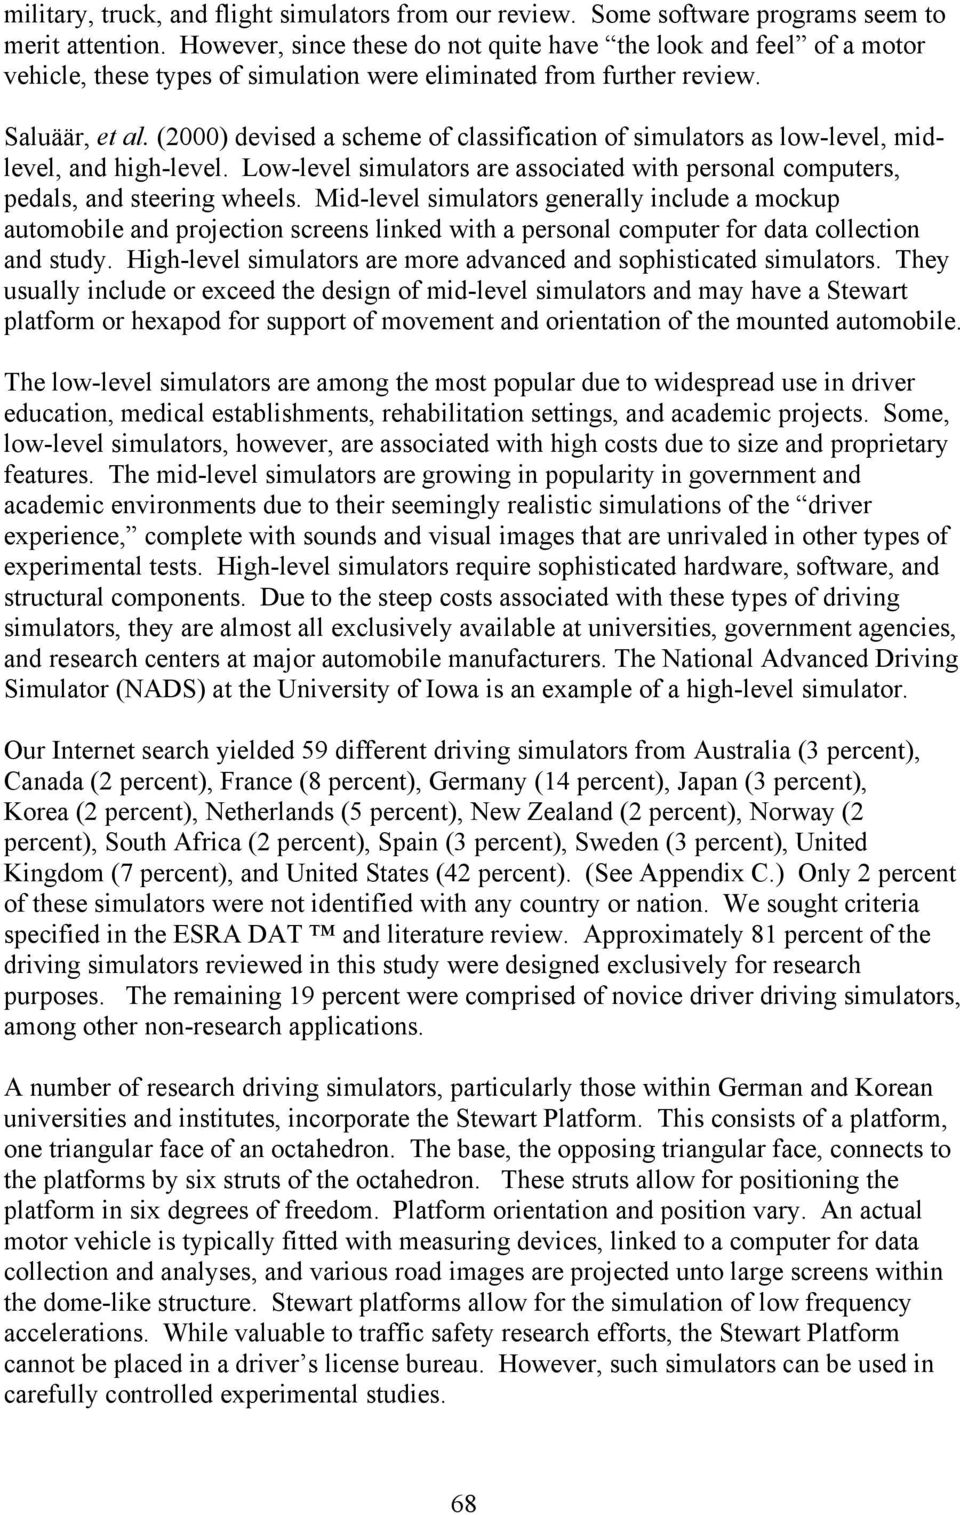 (2000) devised a scheme of classification of simulators as low-level, midlevel, and high-level. Low-level simulators are associated with personal computers, pedals, and steering wheels.